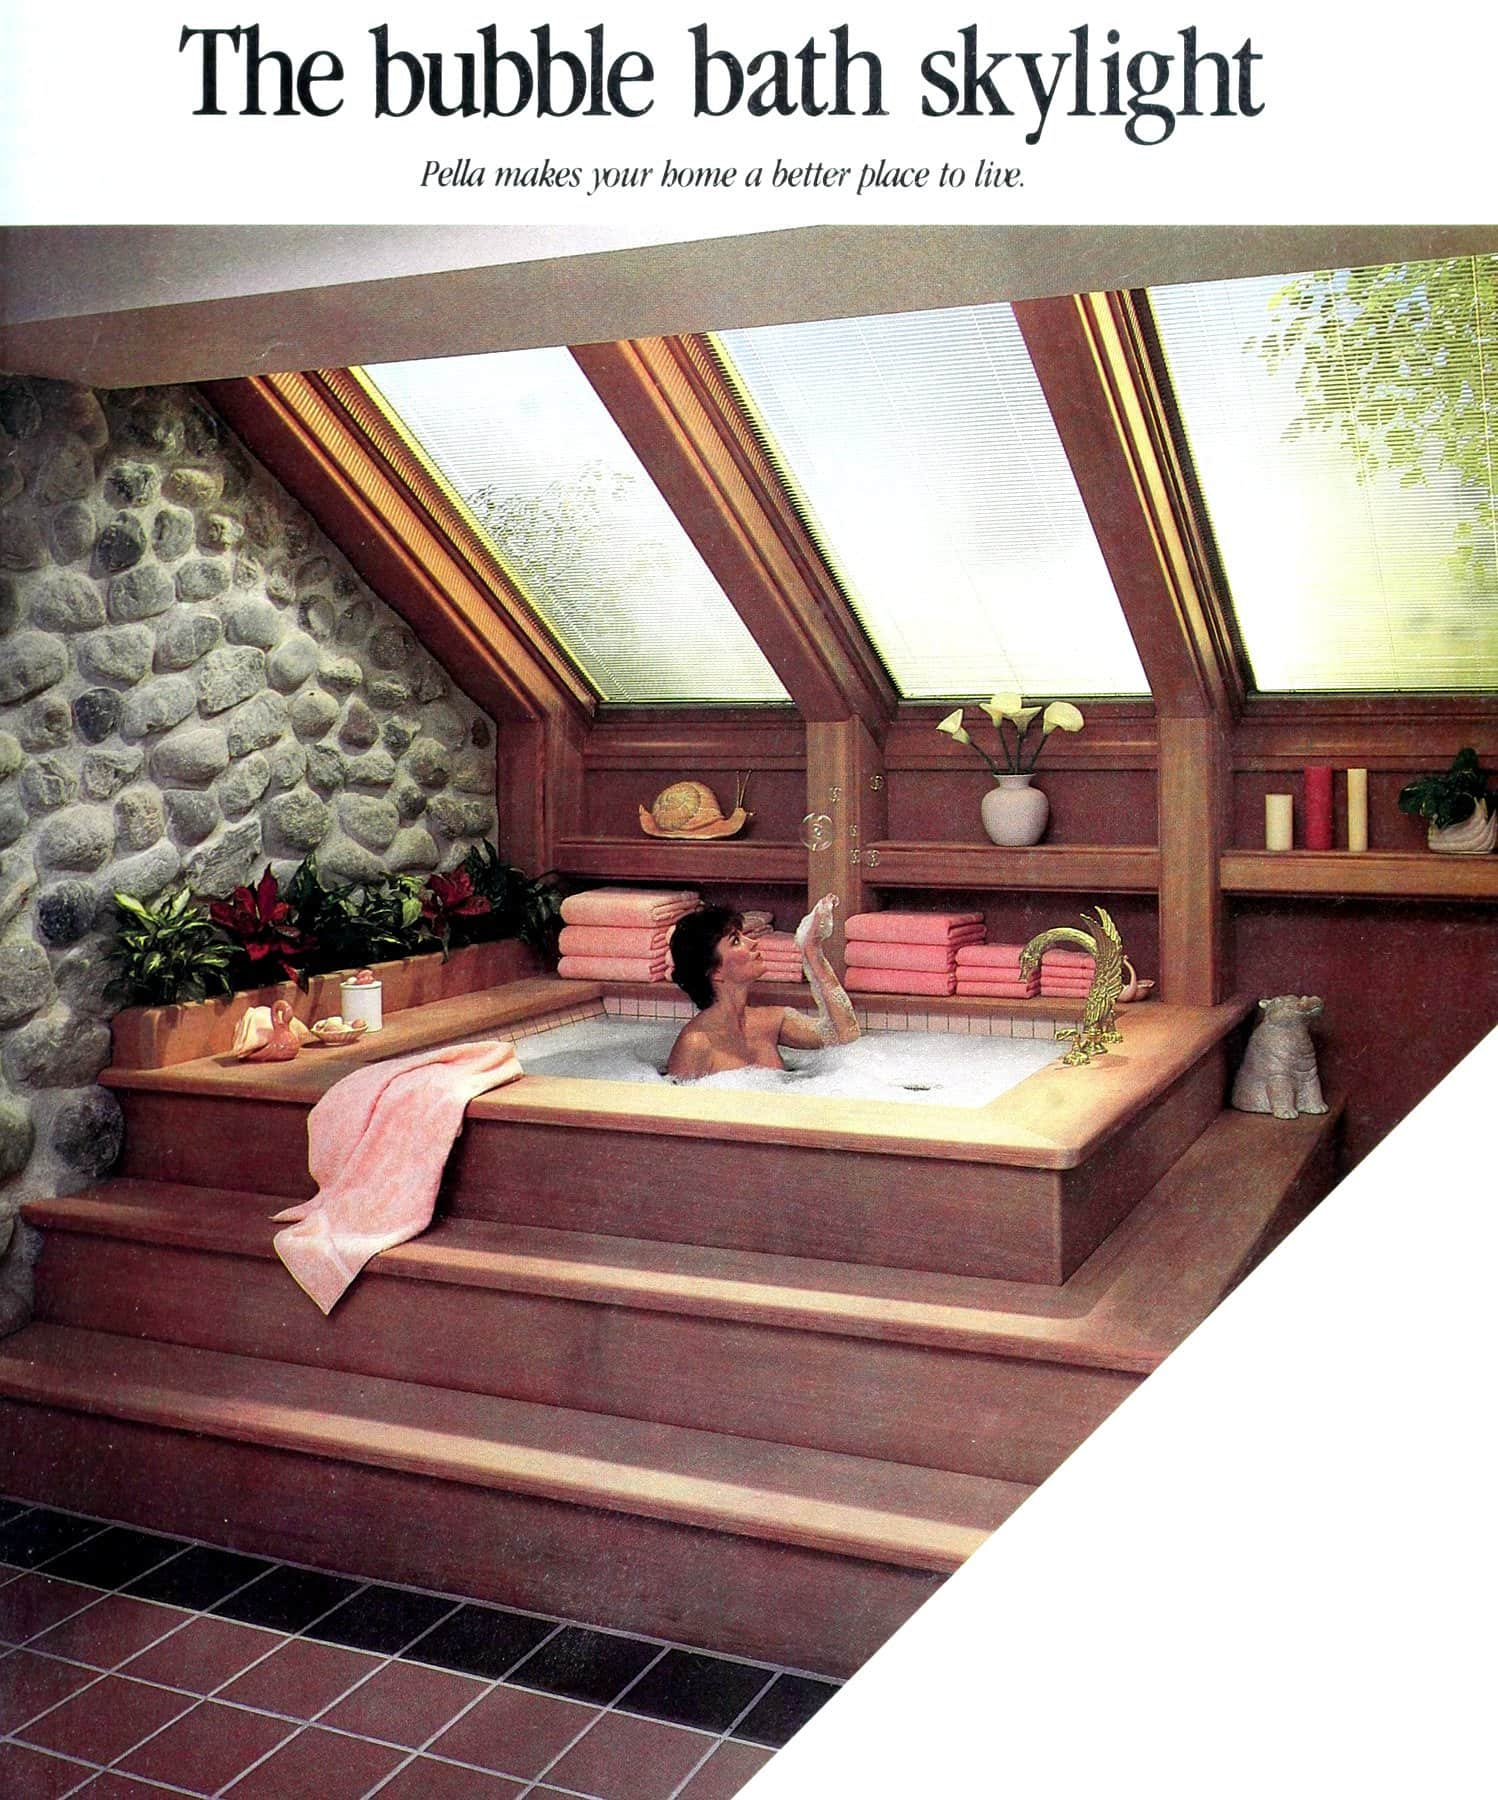 The bubble bath skylight - Vintage eighties bathroom design (1986)